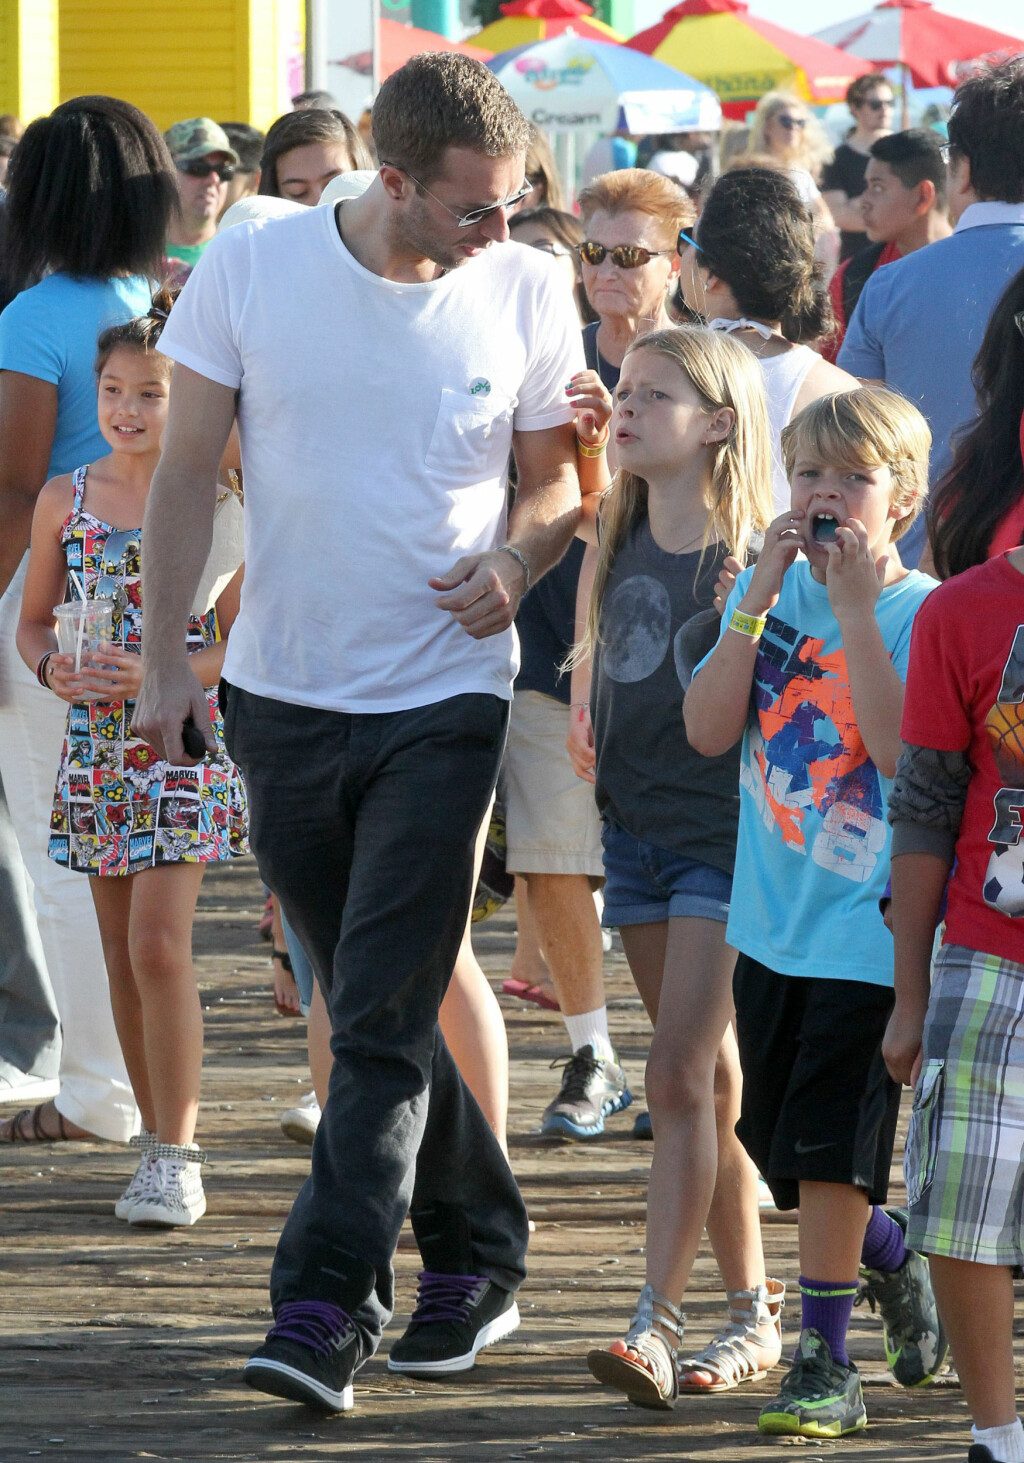 Exclusive... 51464101 Coldplay frontman Chris Martin and kids Apple and Moses getting Icees and having a good time at Santa Monica Pier in Santa Monica, California on June 27, 2014. Chris estranged wife Gwyneth Paltrow appears to be having second thoughts about their conscious uncoupling as it seems that seeing him adjust so well to the single life has caused Gwyneth to second guess everything. FameFlynet, Inc - Beverly Hills, CA, USA - +1 (818) 307-4813  COPYRIGHT STELLA PICTURES Foto: Stella Pictures